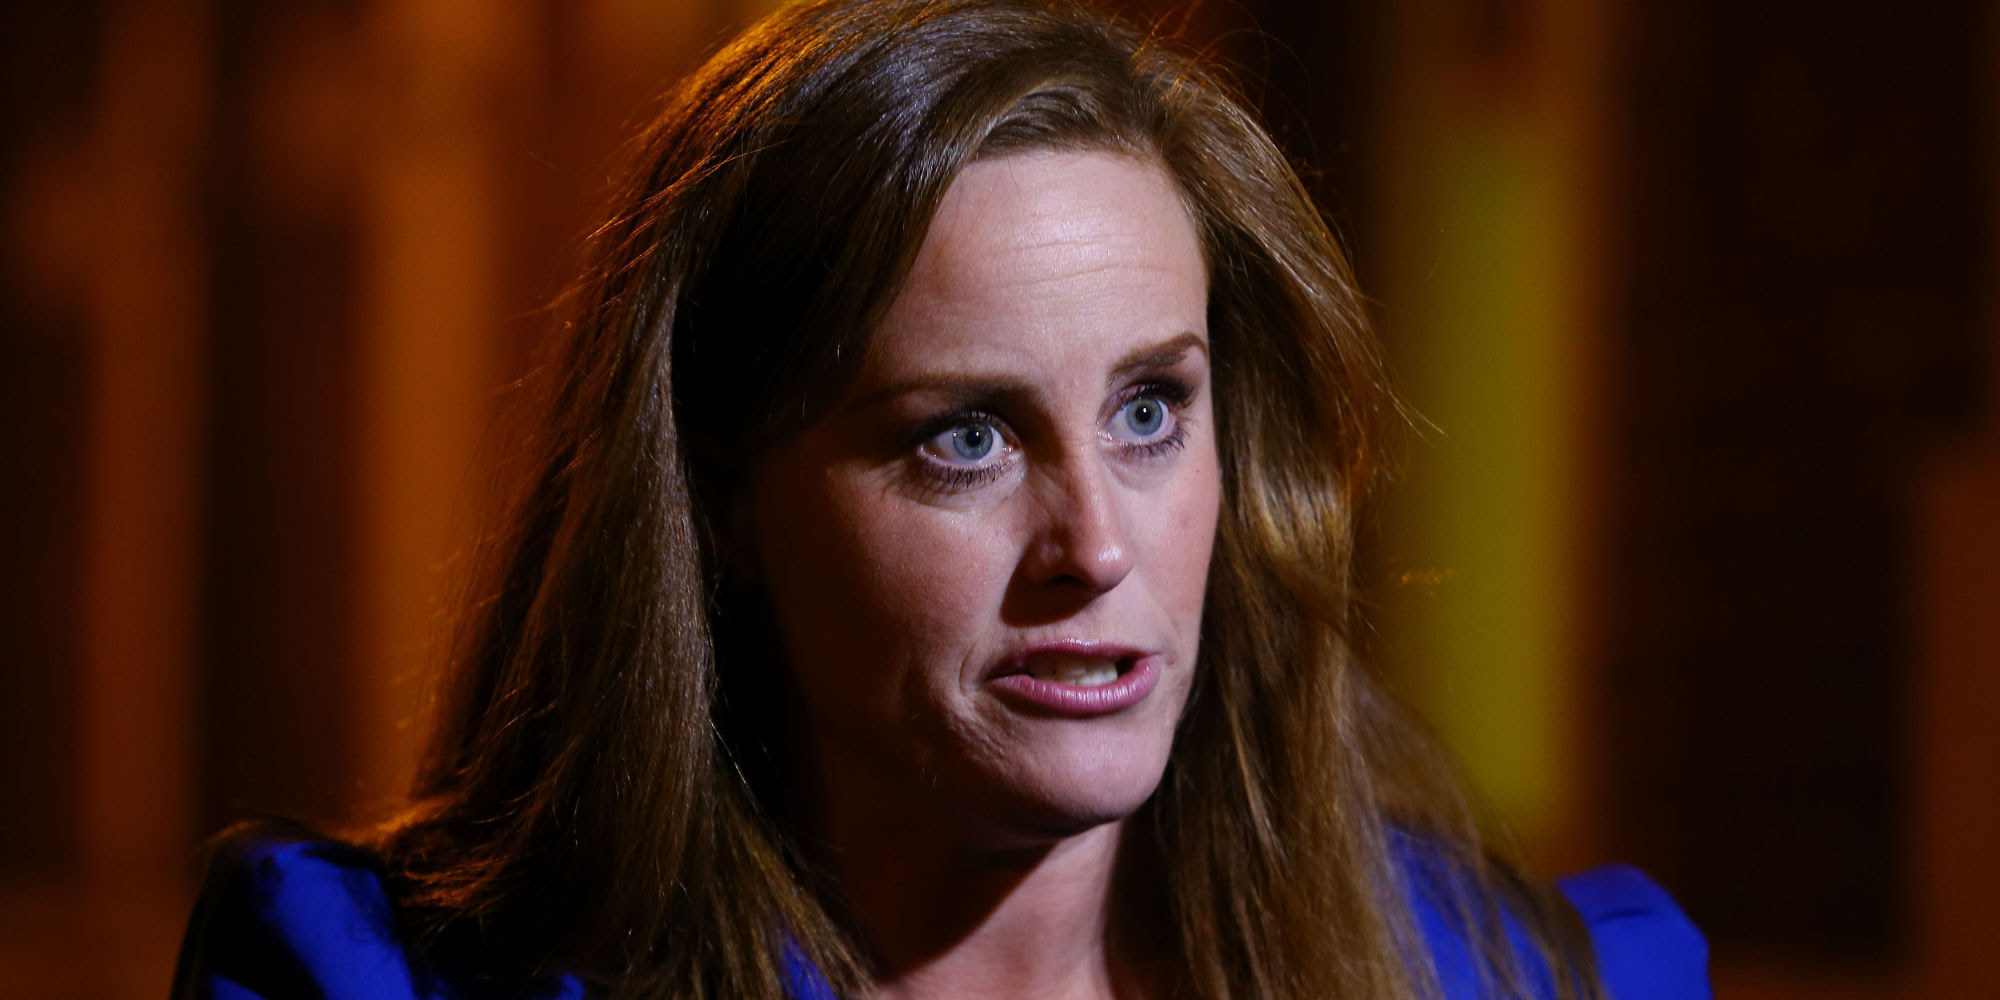 Conservative candidate Kelly Tolhurst ... never seen in the same room as Nikki Sinclaire. Just saying!